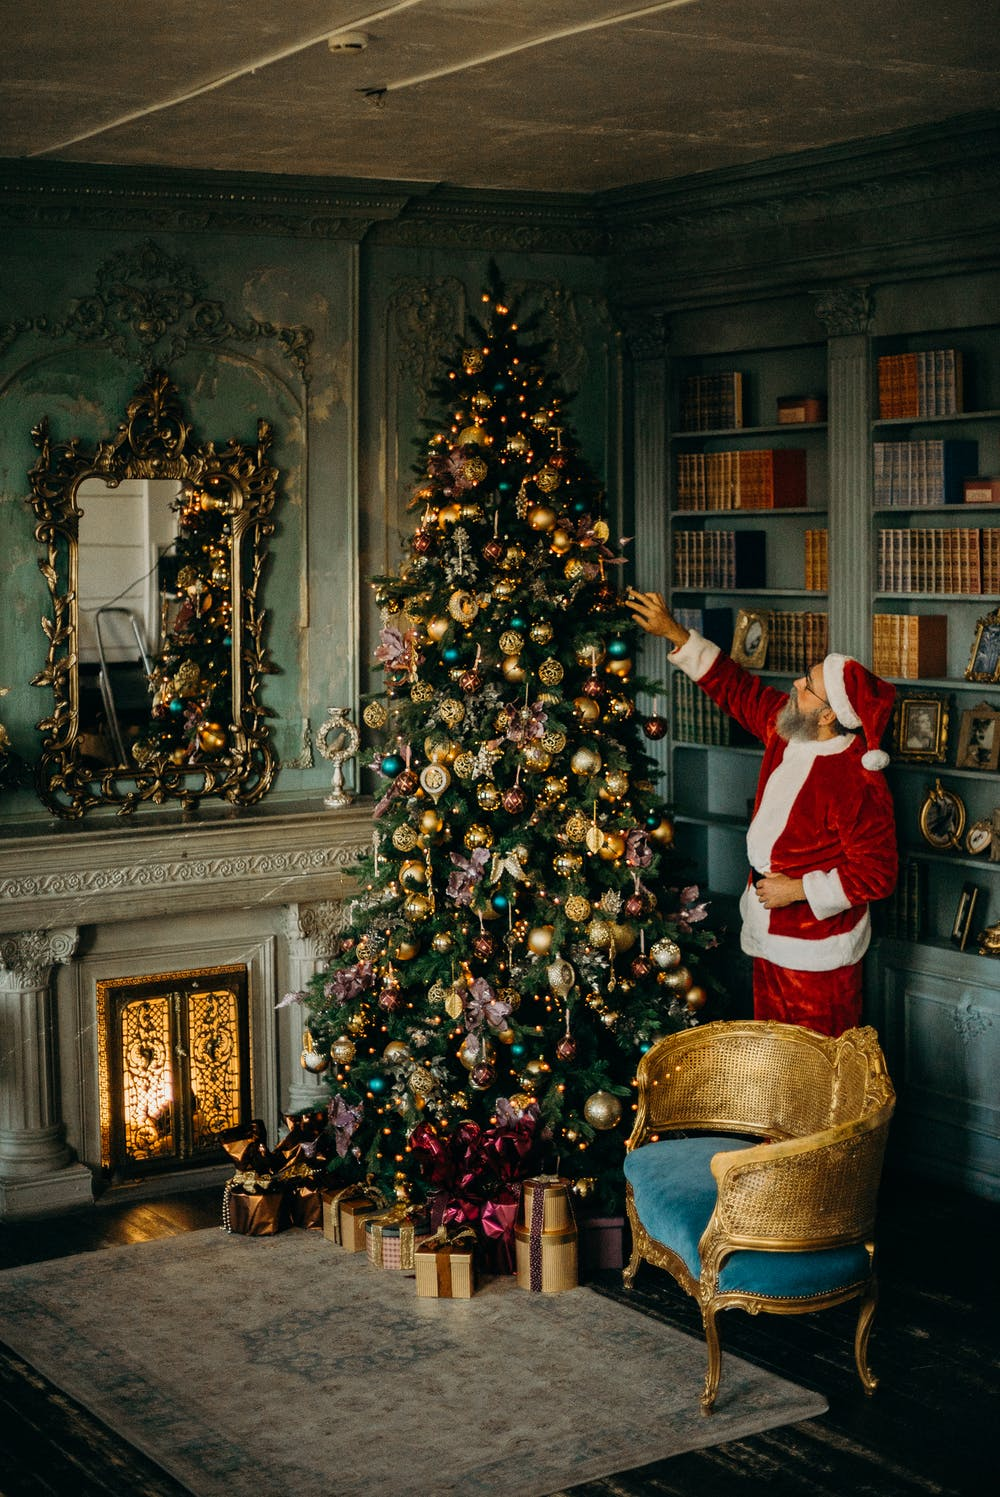 A Christmas tree and a man dressed as Father Christmas